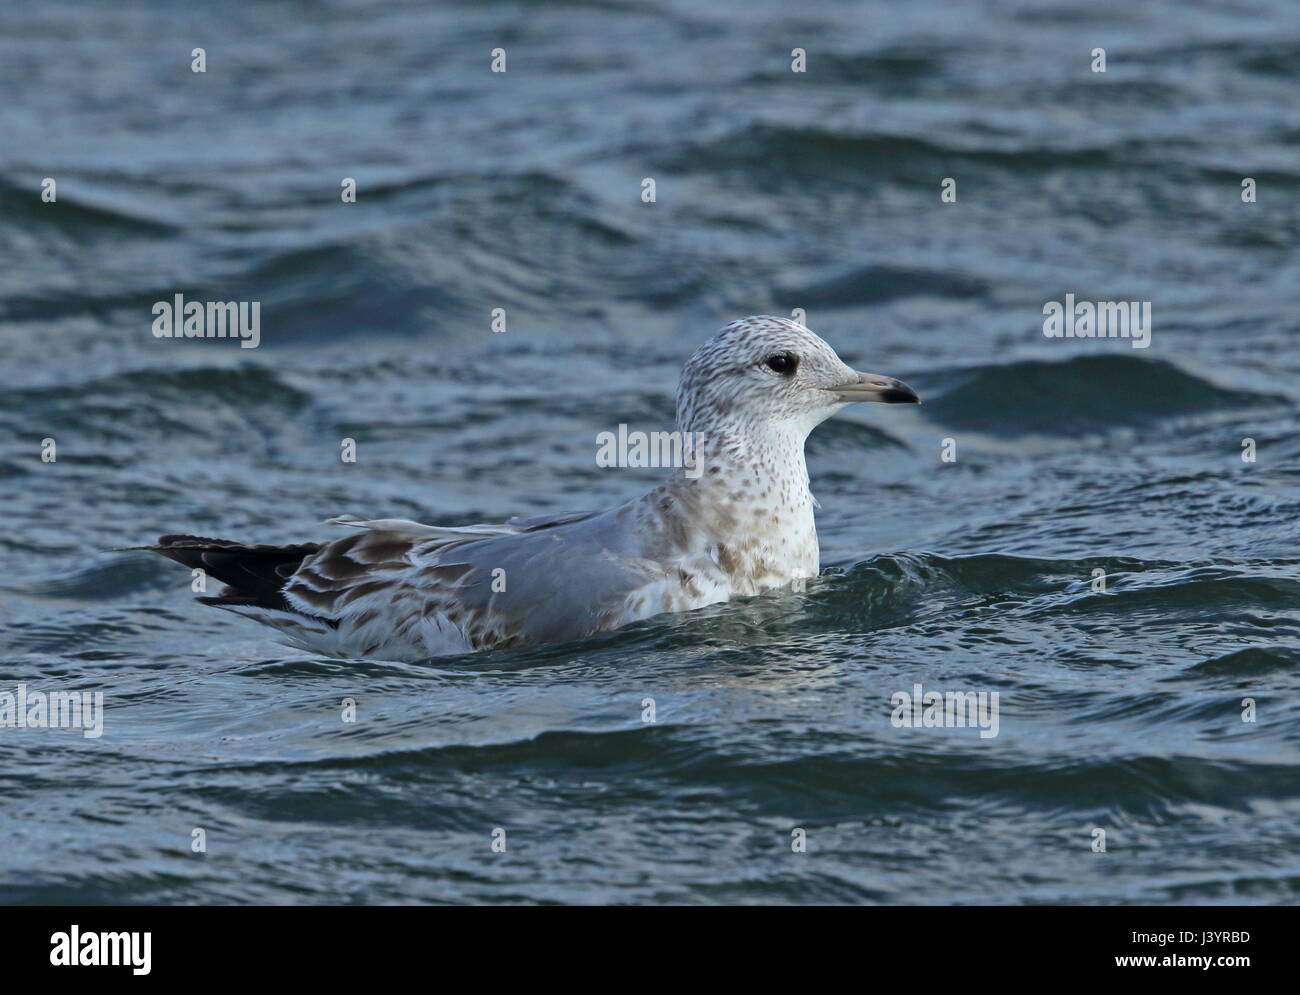 Kamchatka Gull (Larus canus camtschatchensis) first winter swimming in the sea  Choshi; Chiba Prefecture, Japan - Stock Image